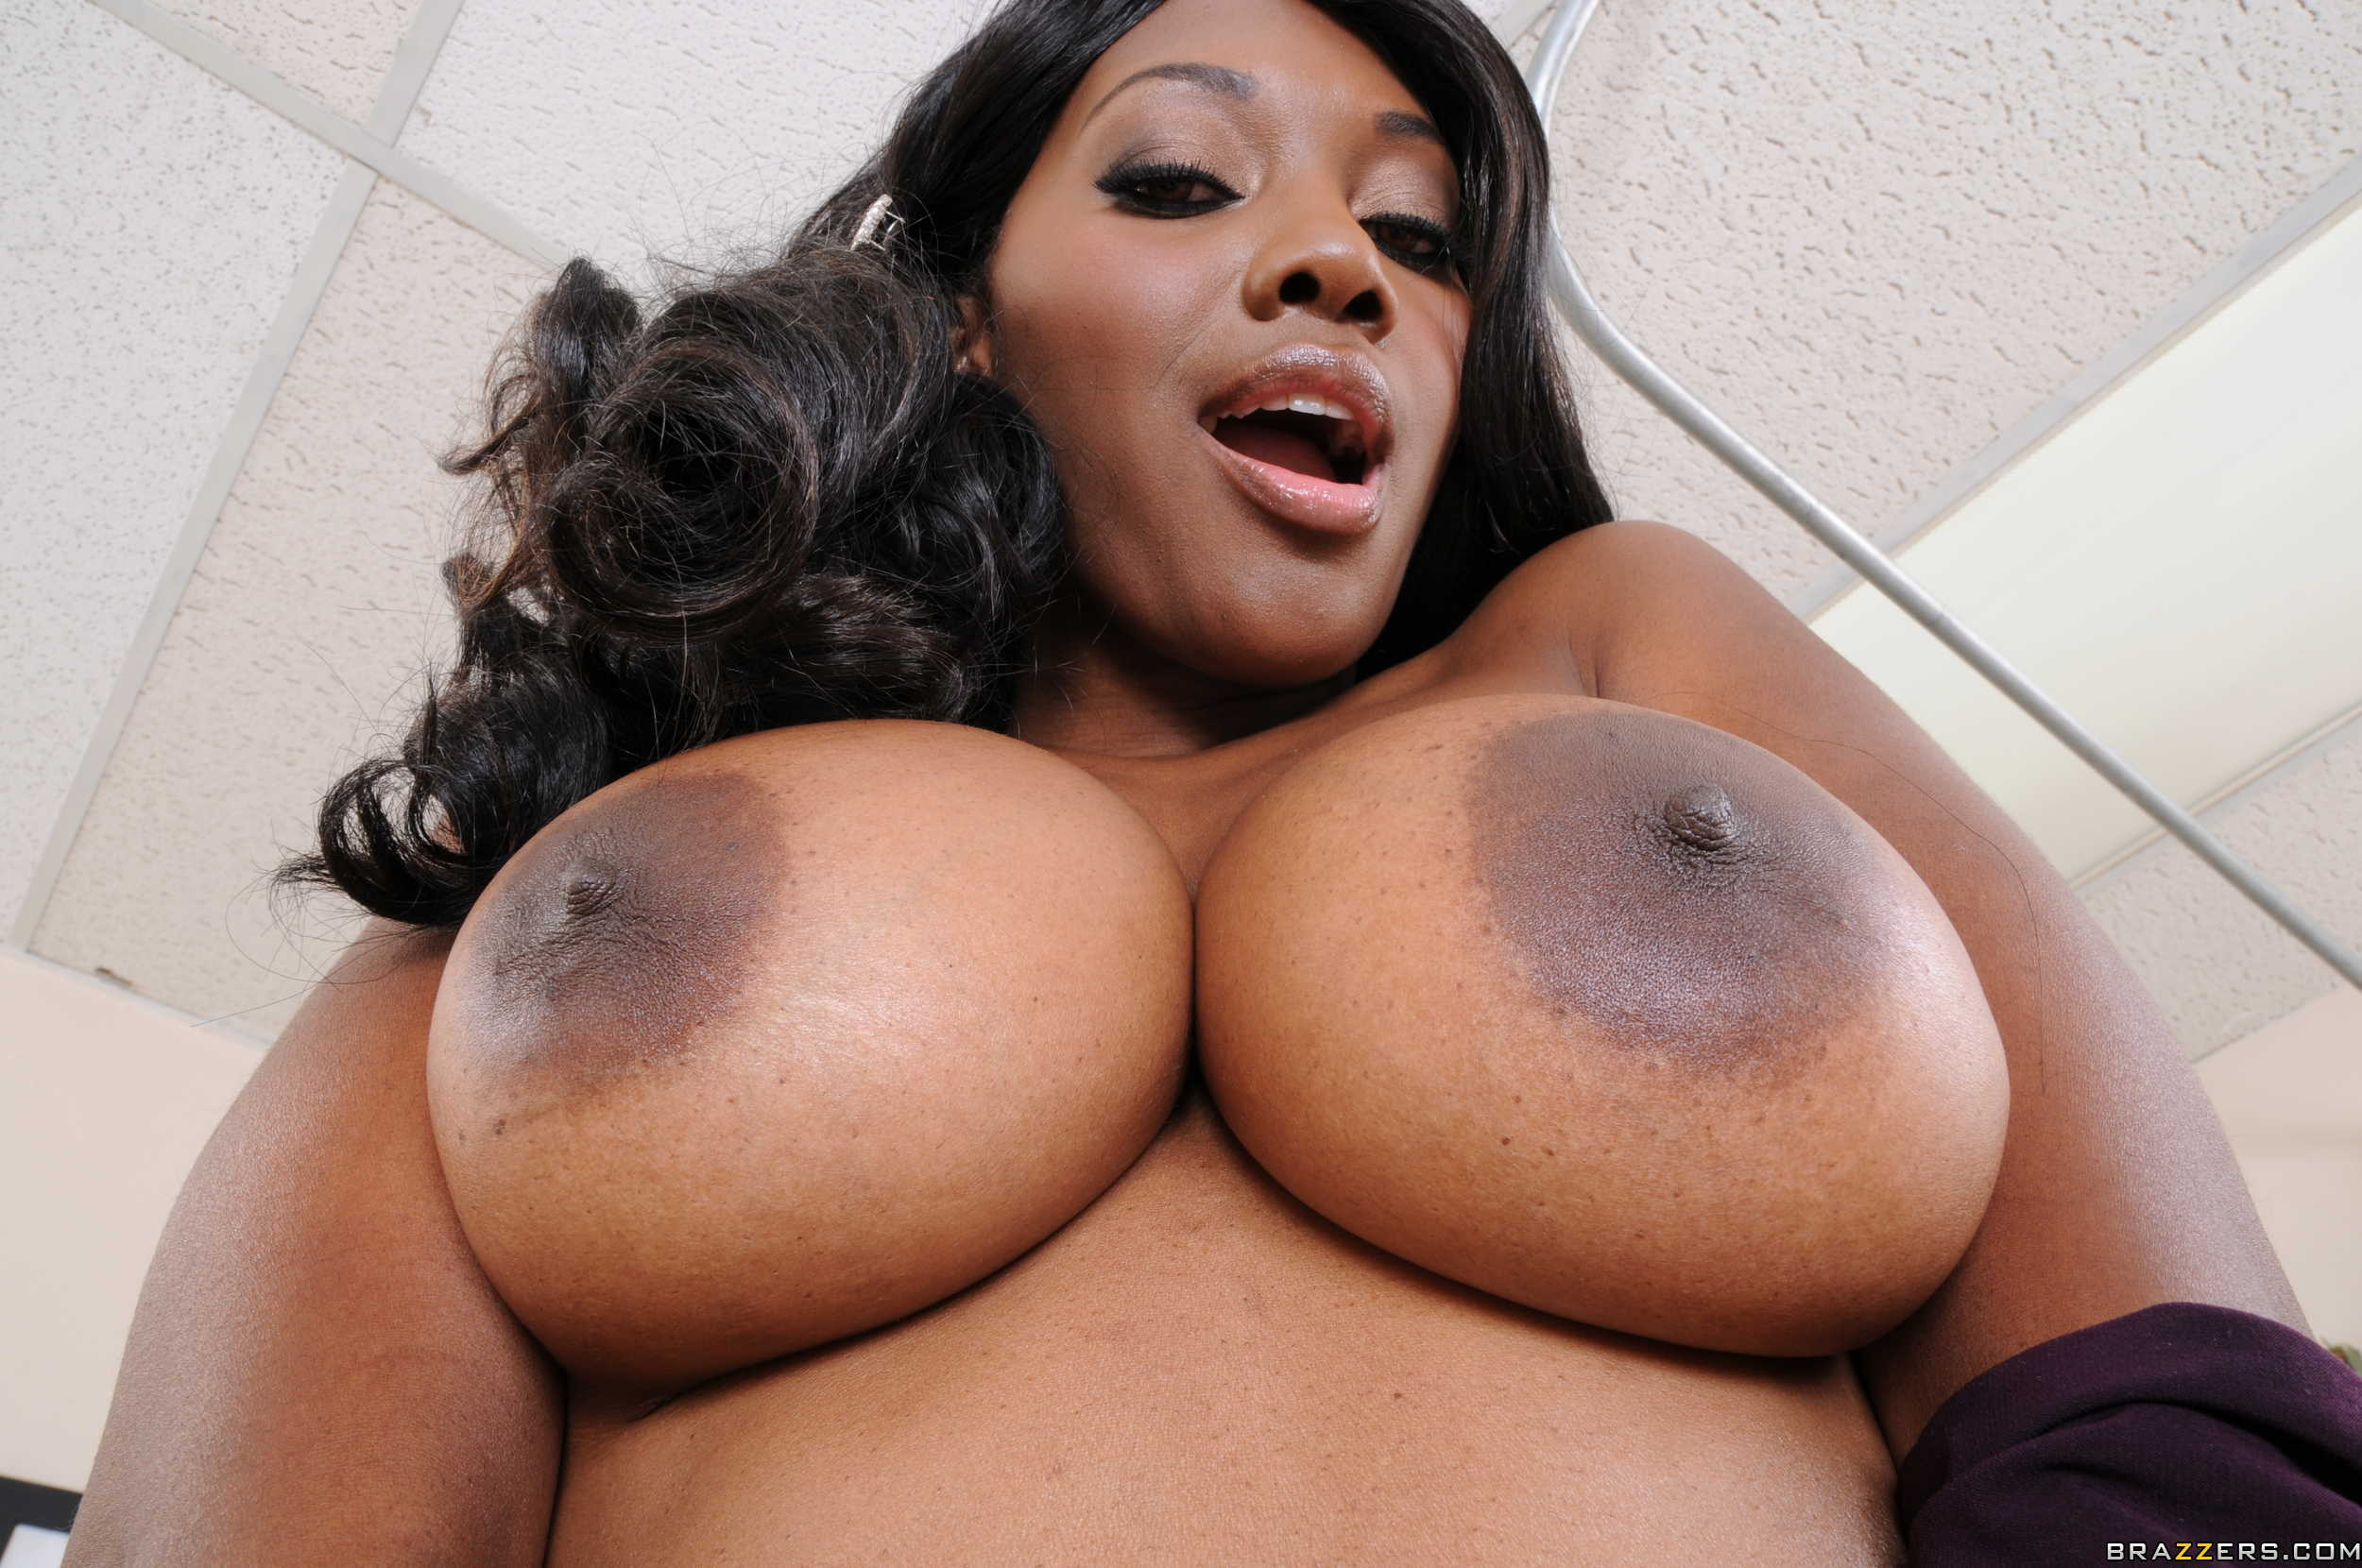 Big black tits tumblr